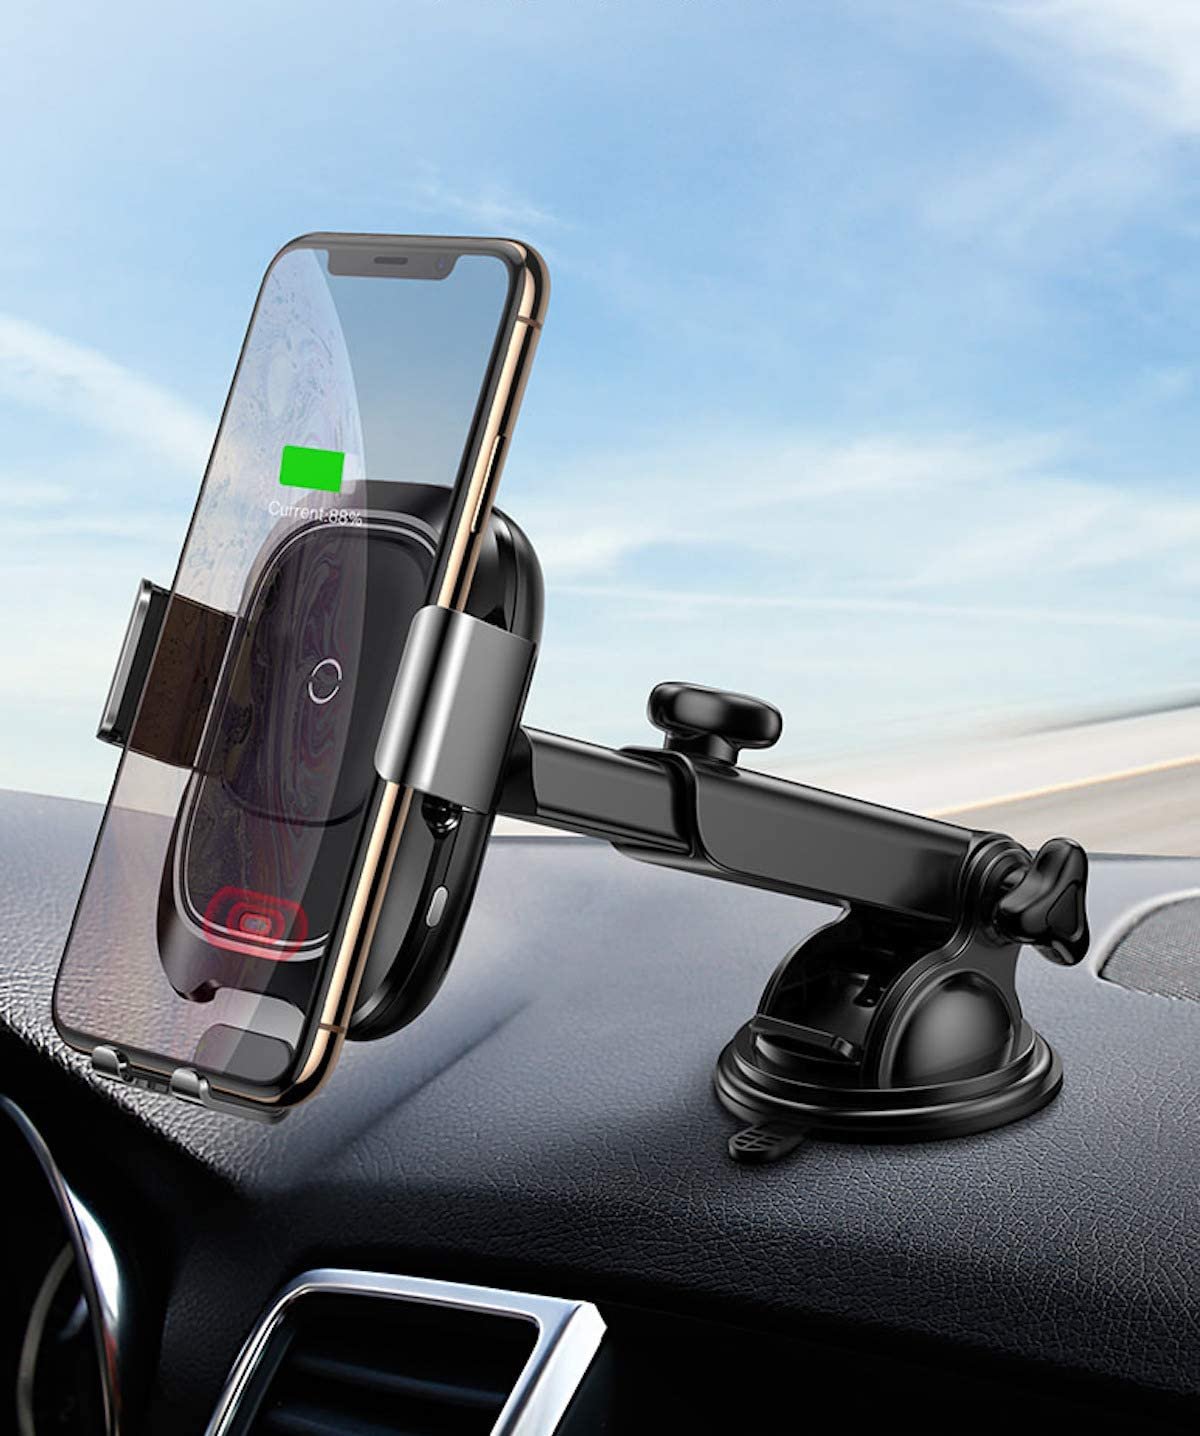 Decbird Wireless Charging car Mount|qi Wireless car Fast Charger Mount|Phone Holder for car|car Phone Mount Wireless Charger|Compatible with IphoneX//8plus//Samsung S8//S9//Note9 Dashboard Mount